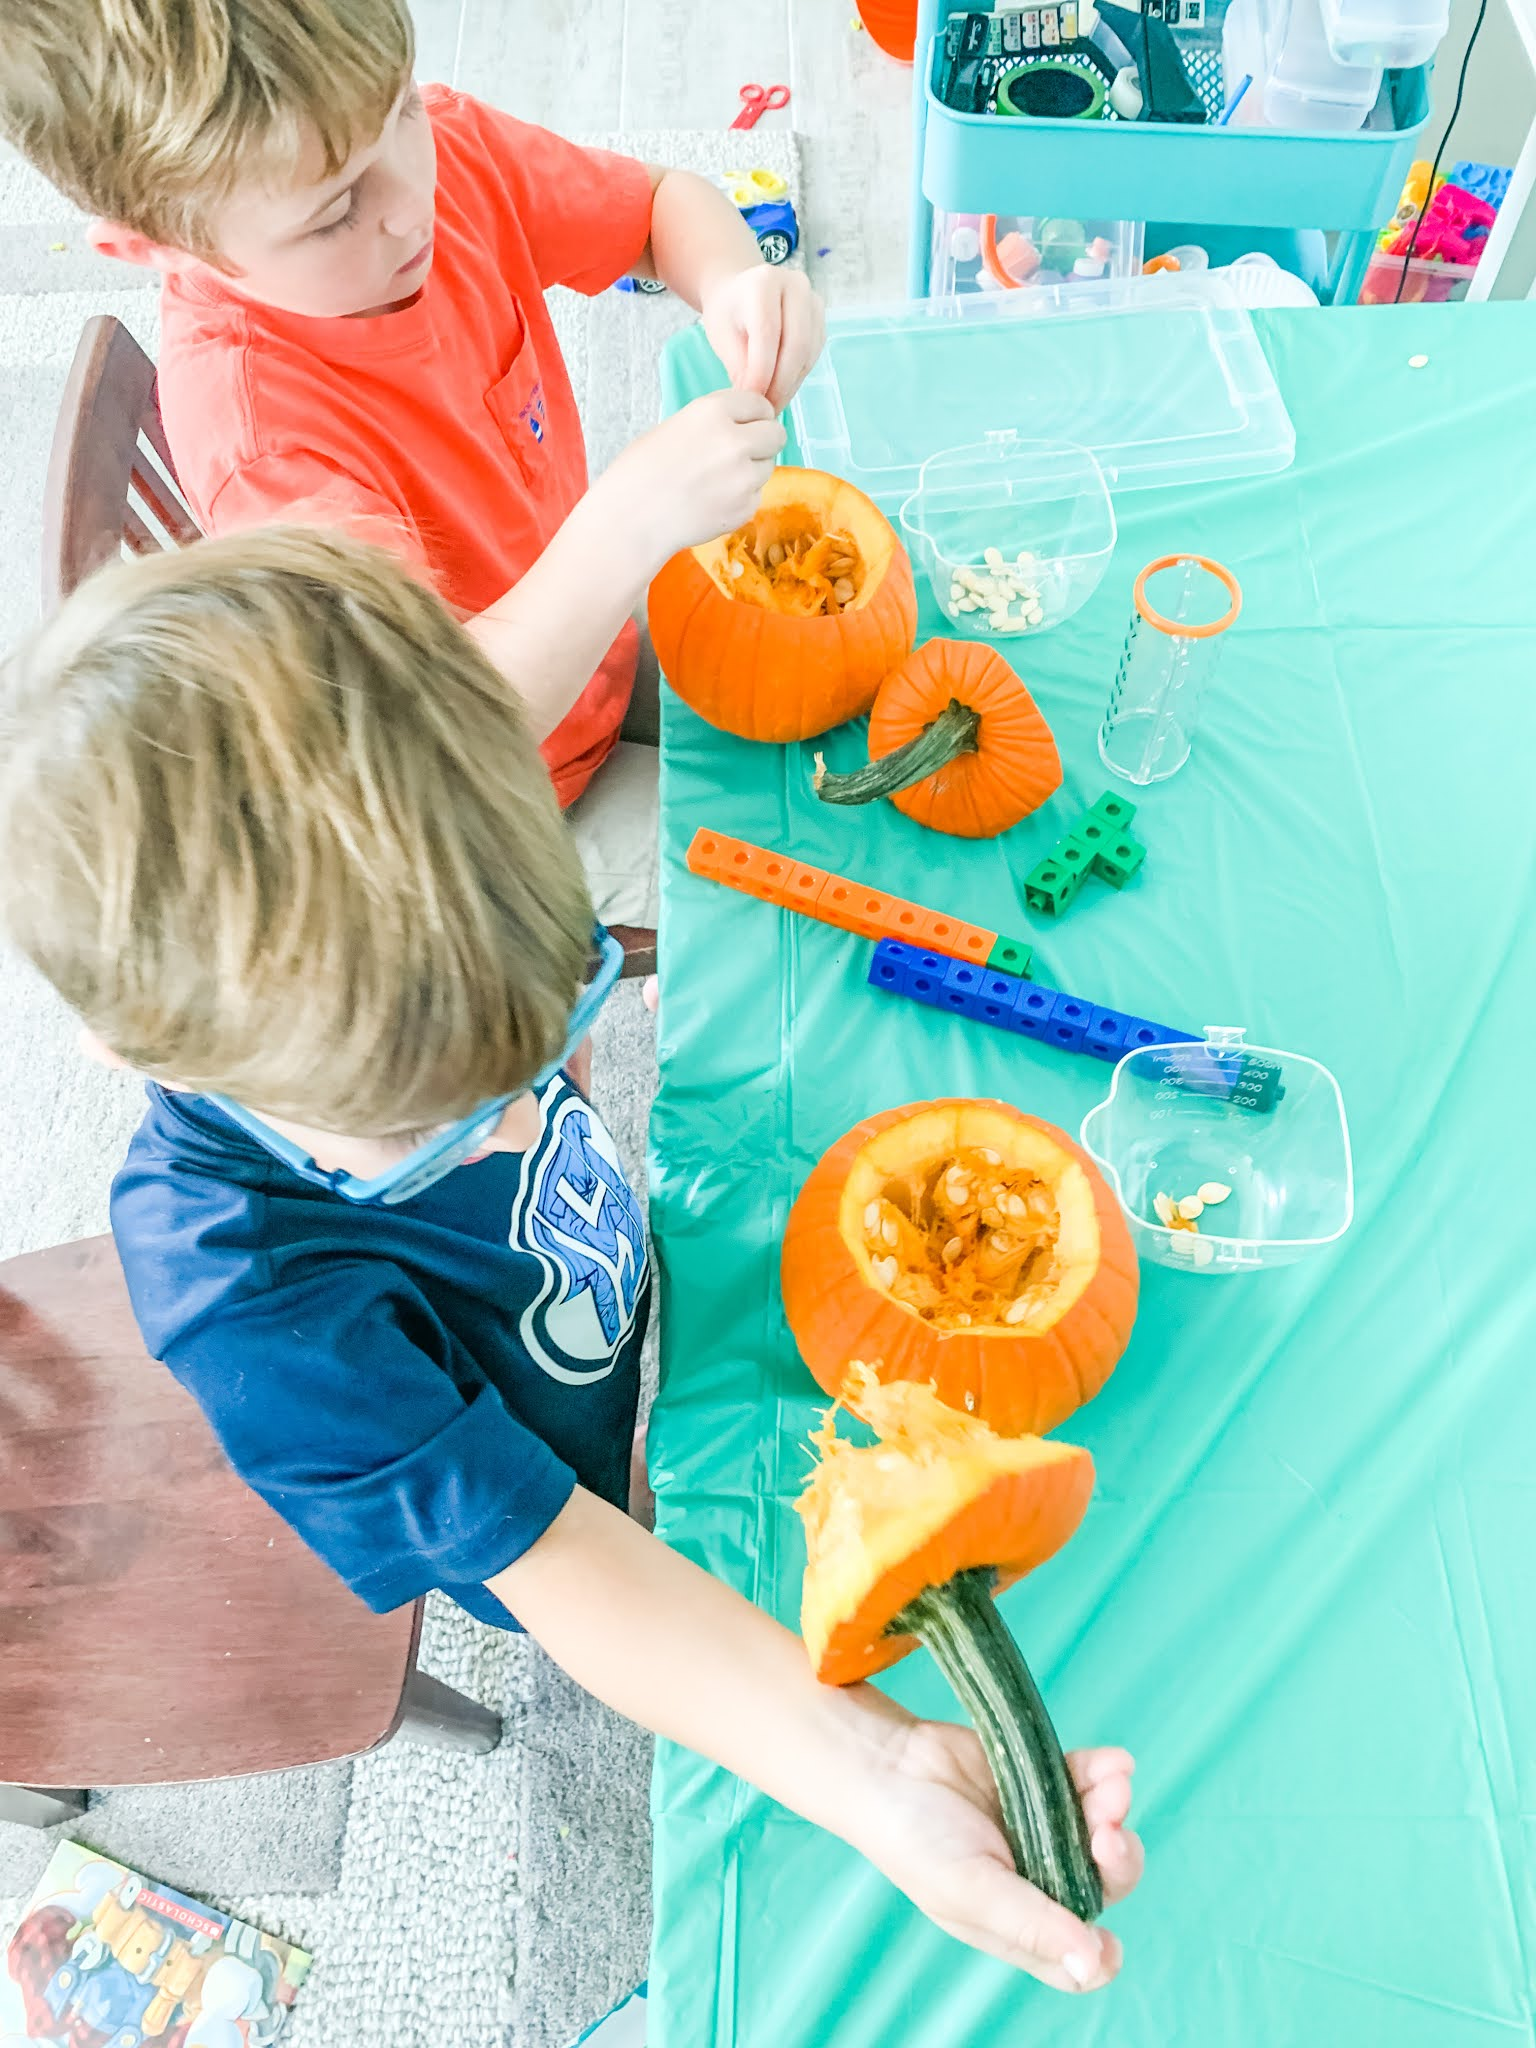 Science experiment for kids, pumpkin investigation taking the seeds out and weighing them.